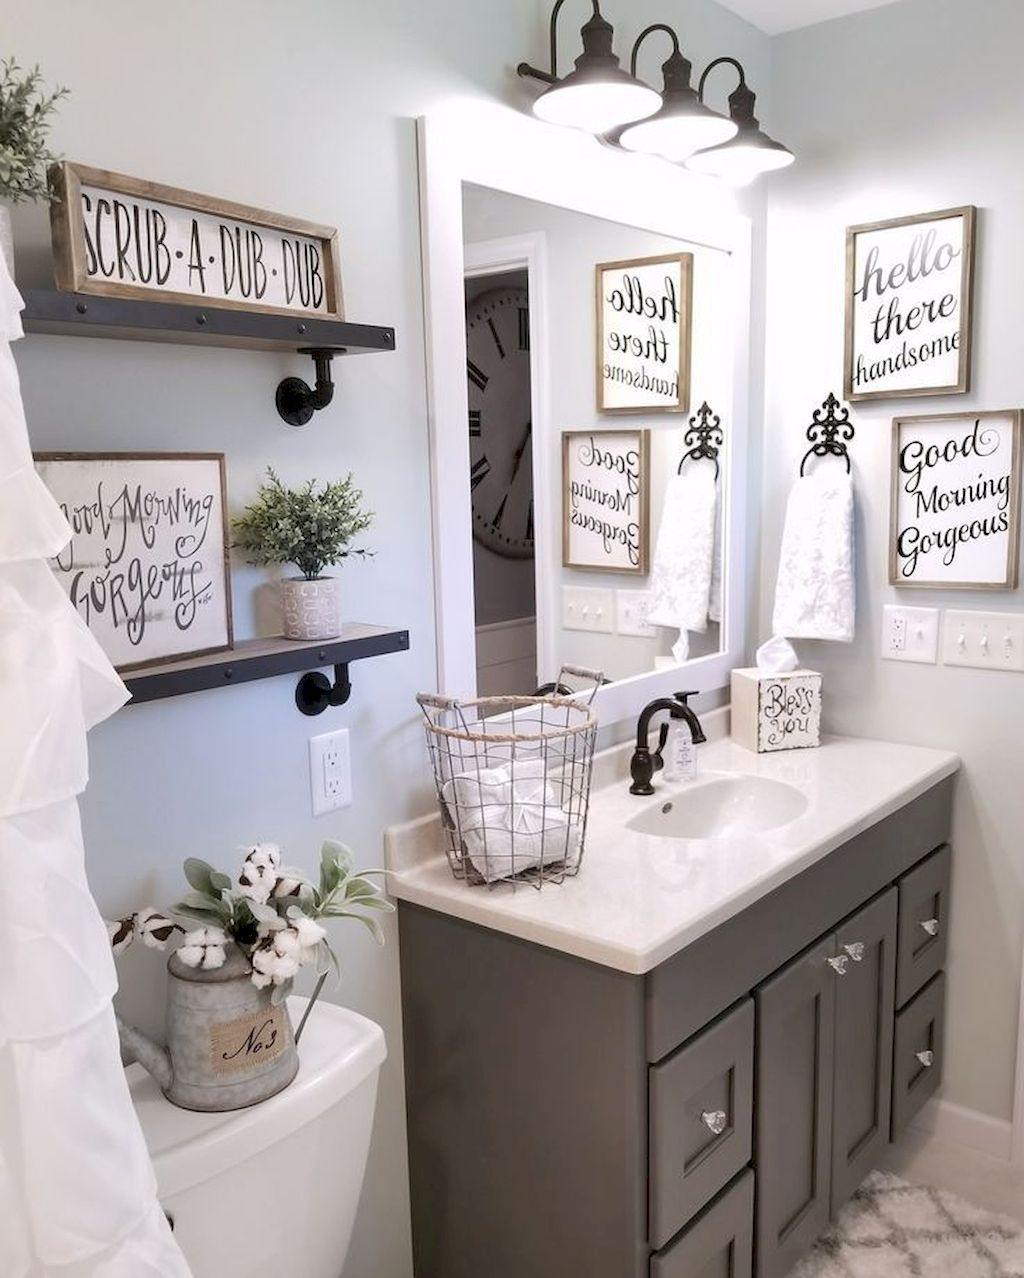 Marvelous 110 Spectacular Farmhouse Bathroom Decor Ideas   Roomadness.com